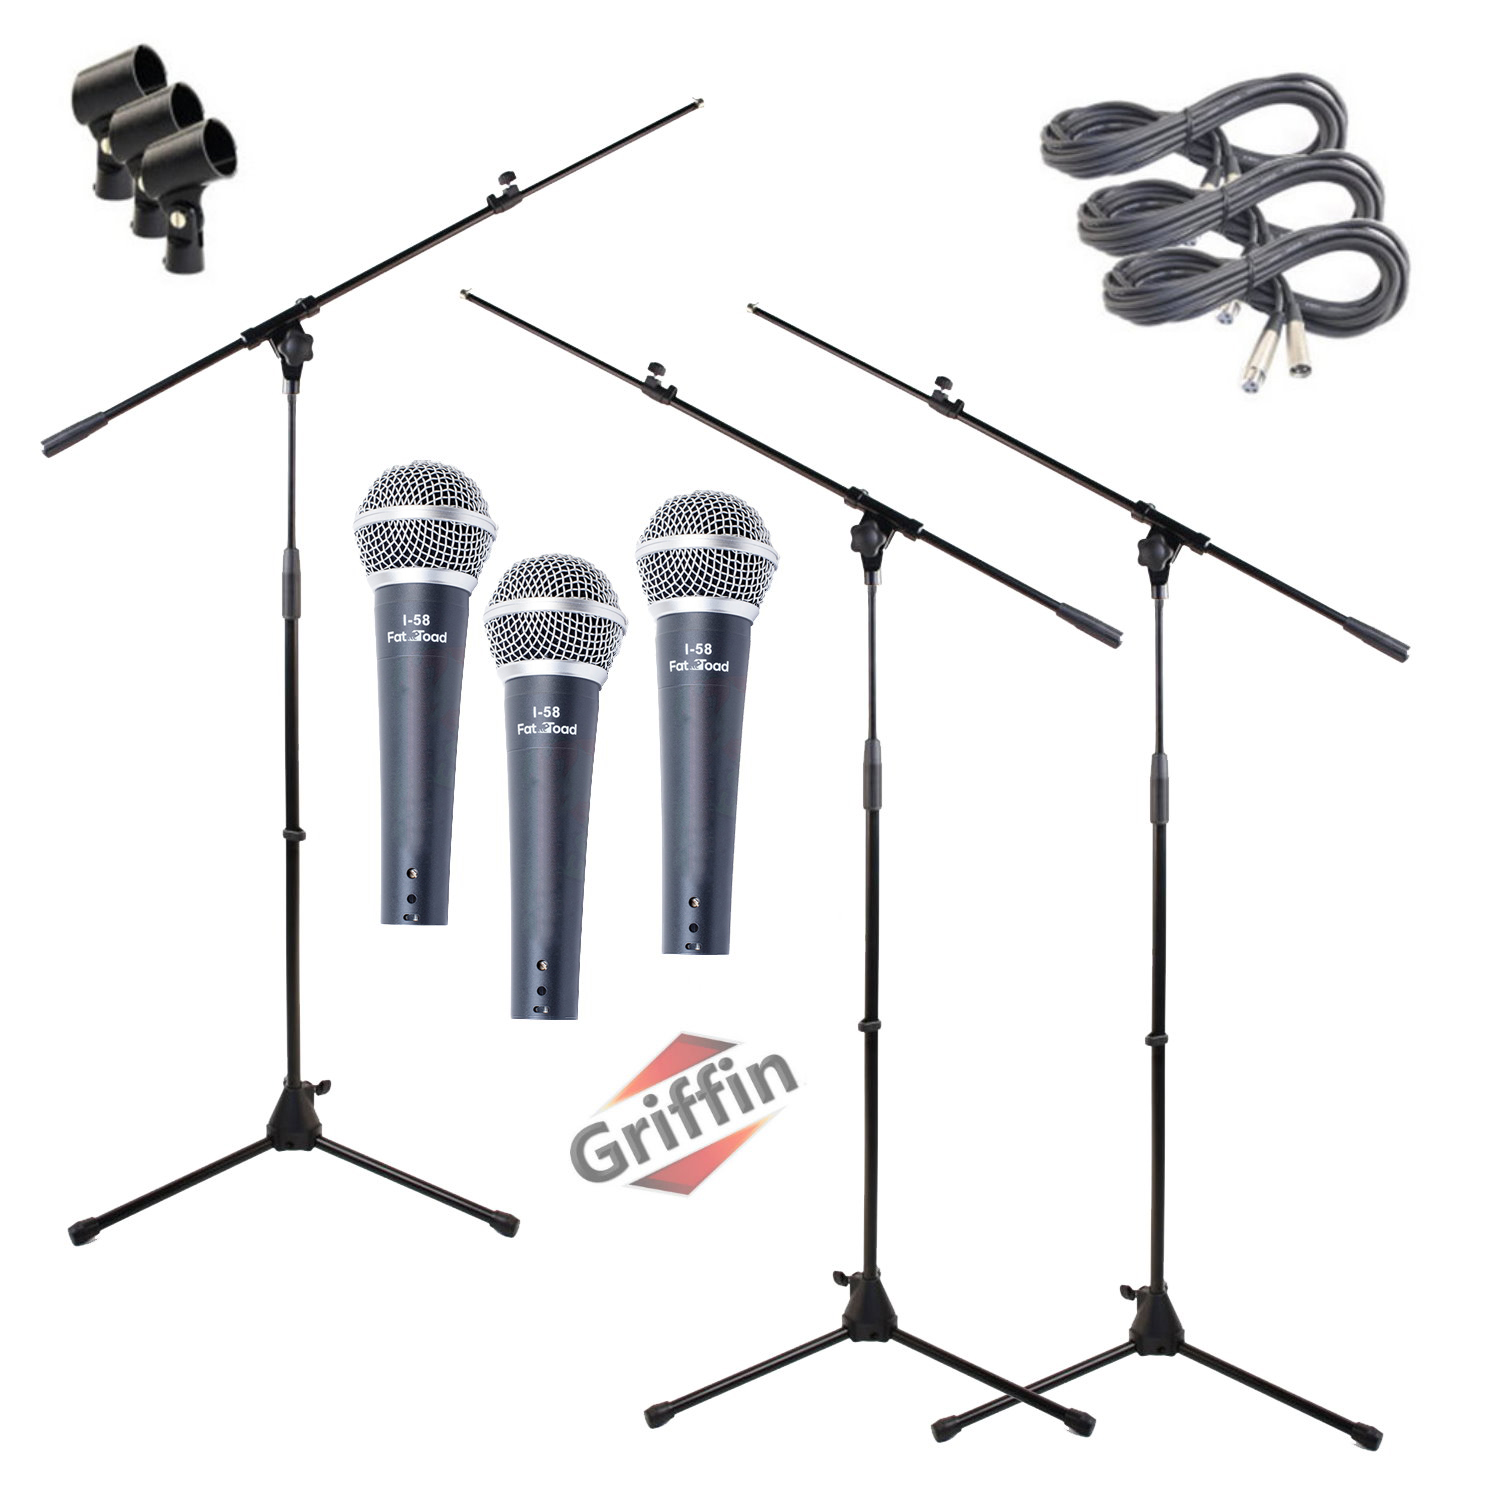 Dynamic Microphones with Tripod Stand Package, XLR Mic Cables & Clips 3 Pack by Griffin